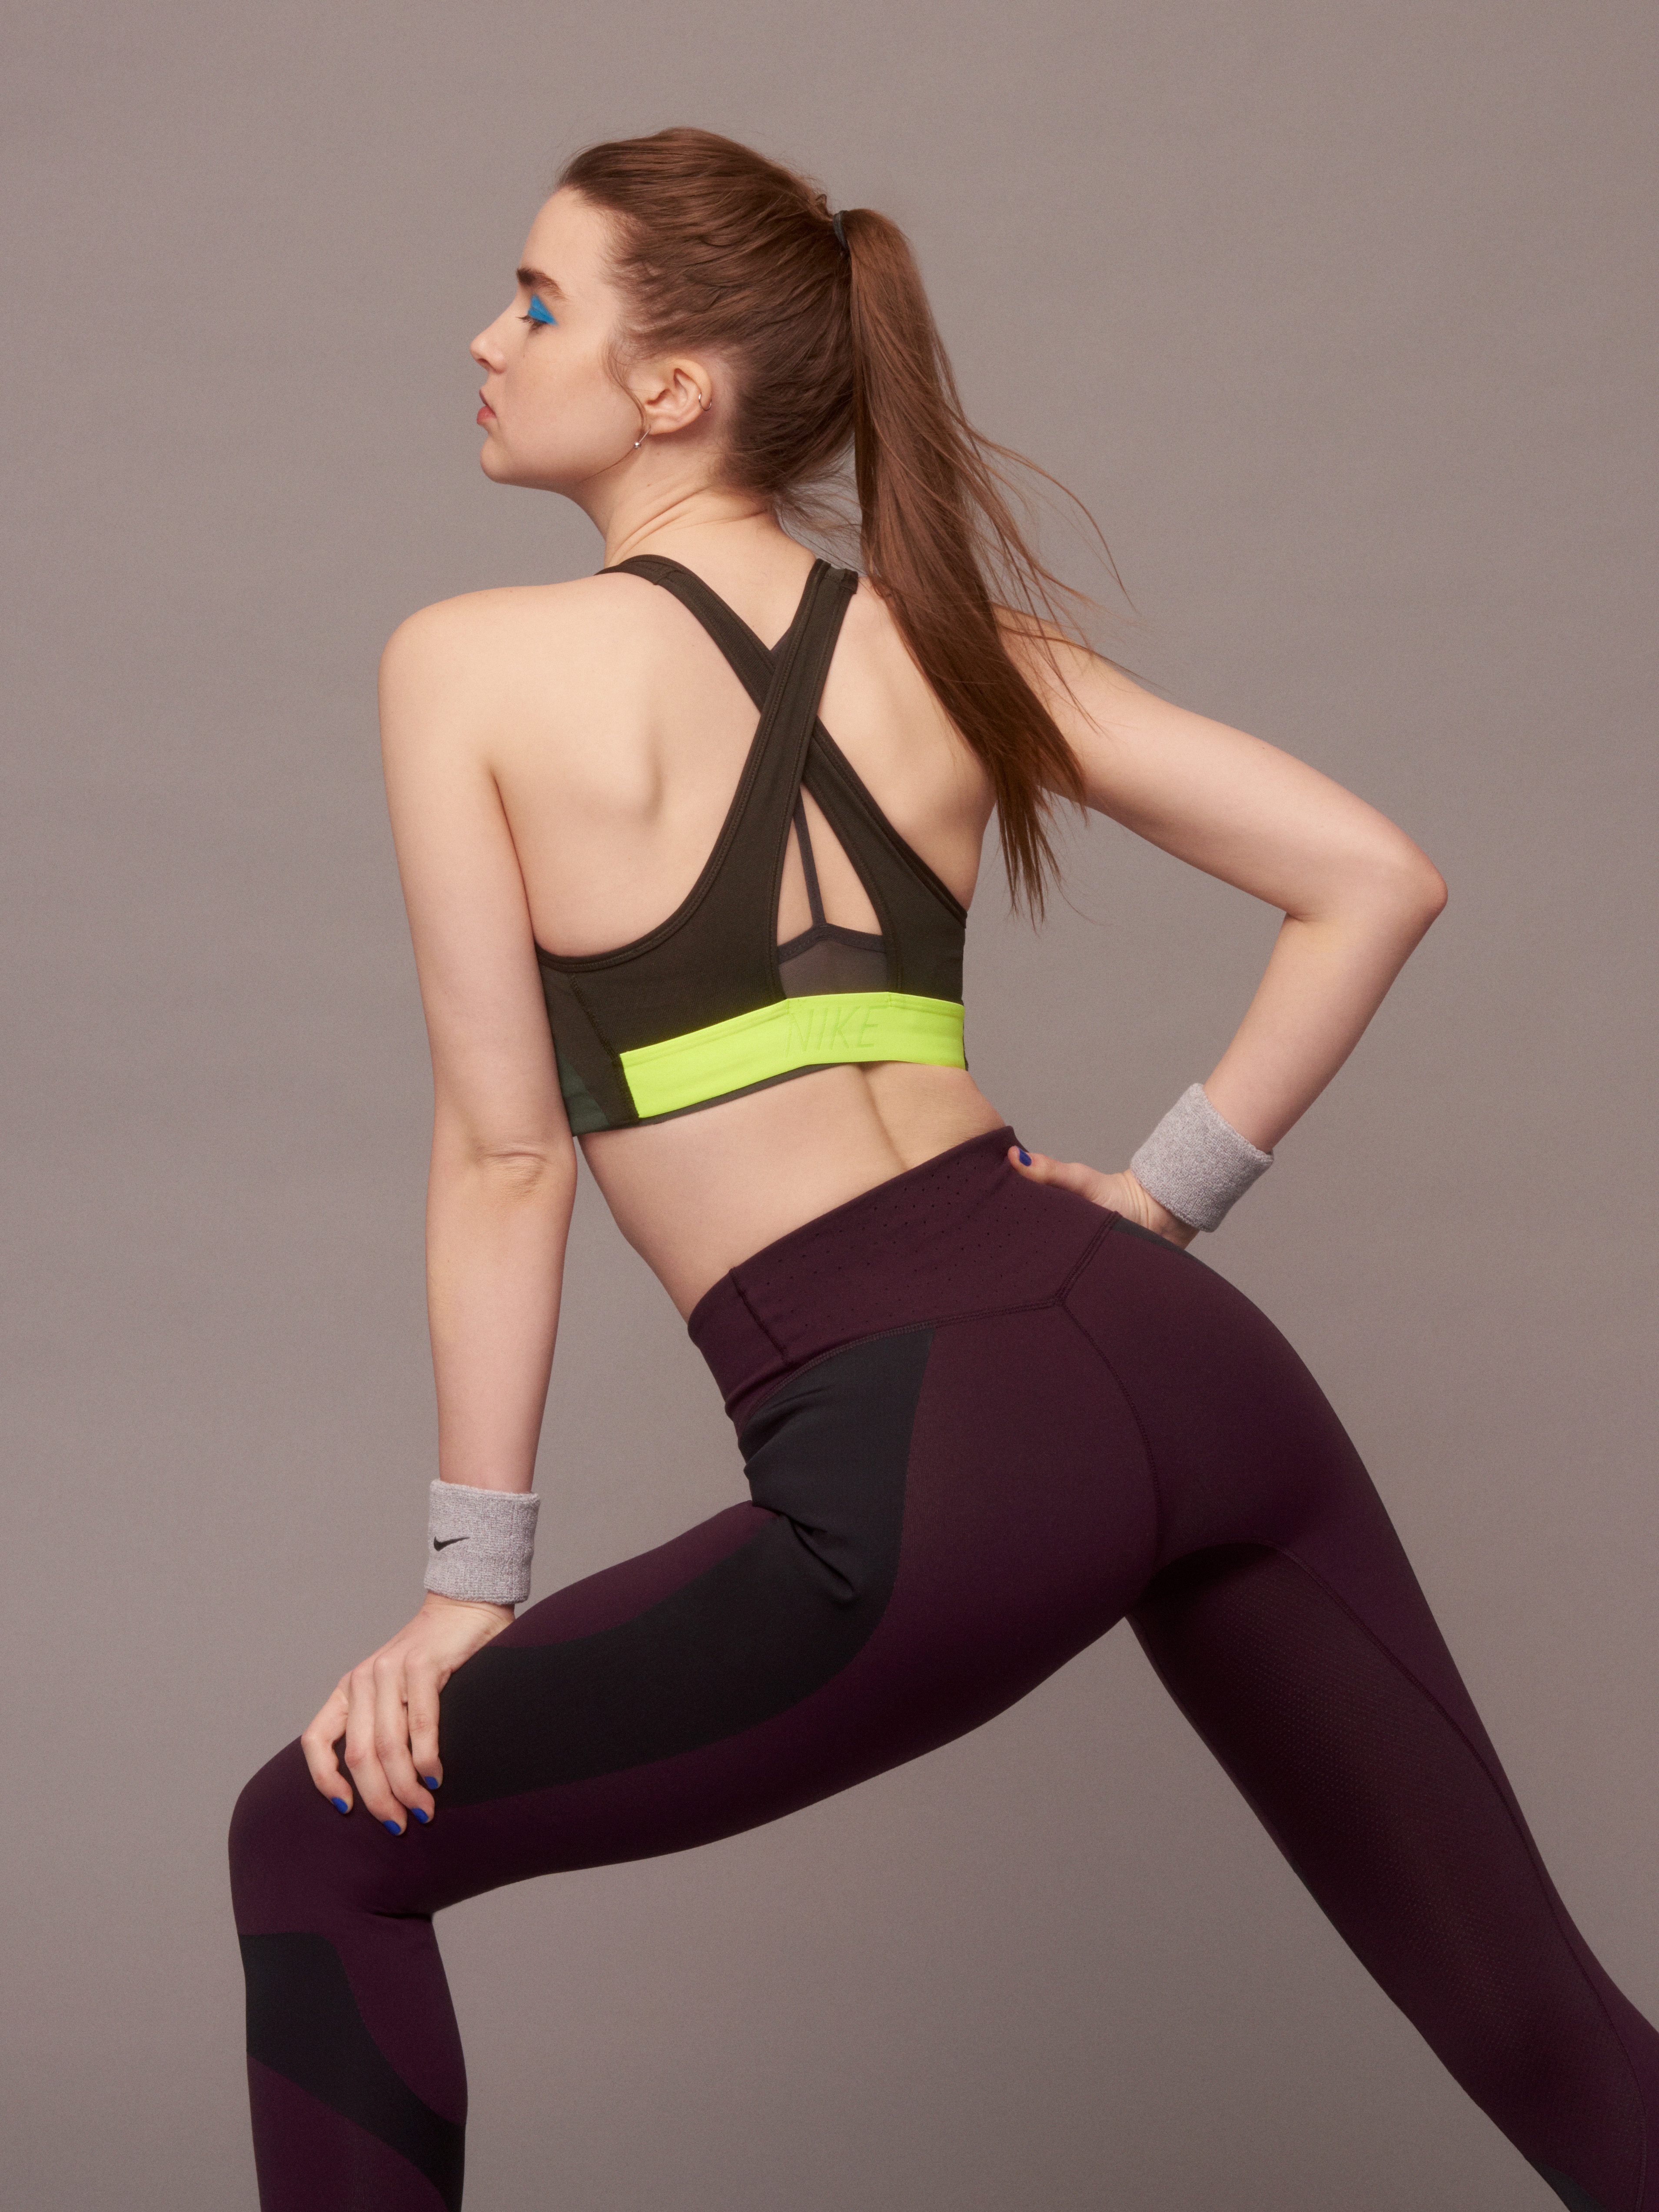 NikeWomen FA 17 Collection Look 19 back